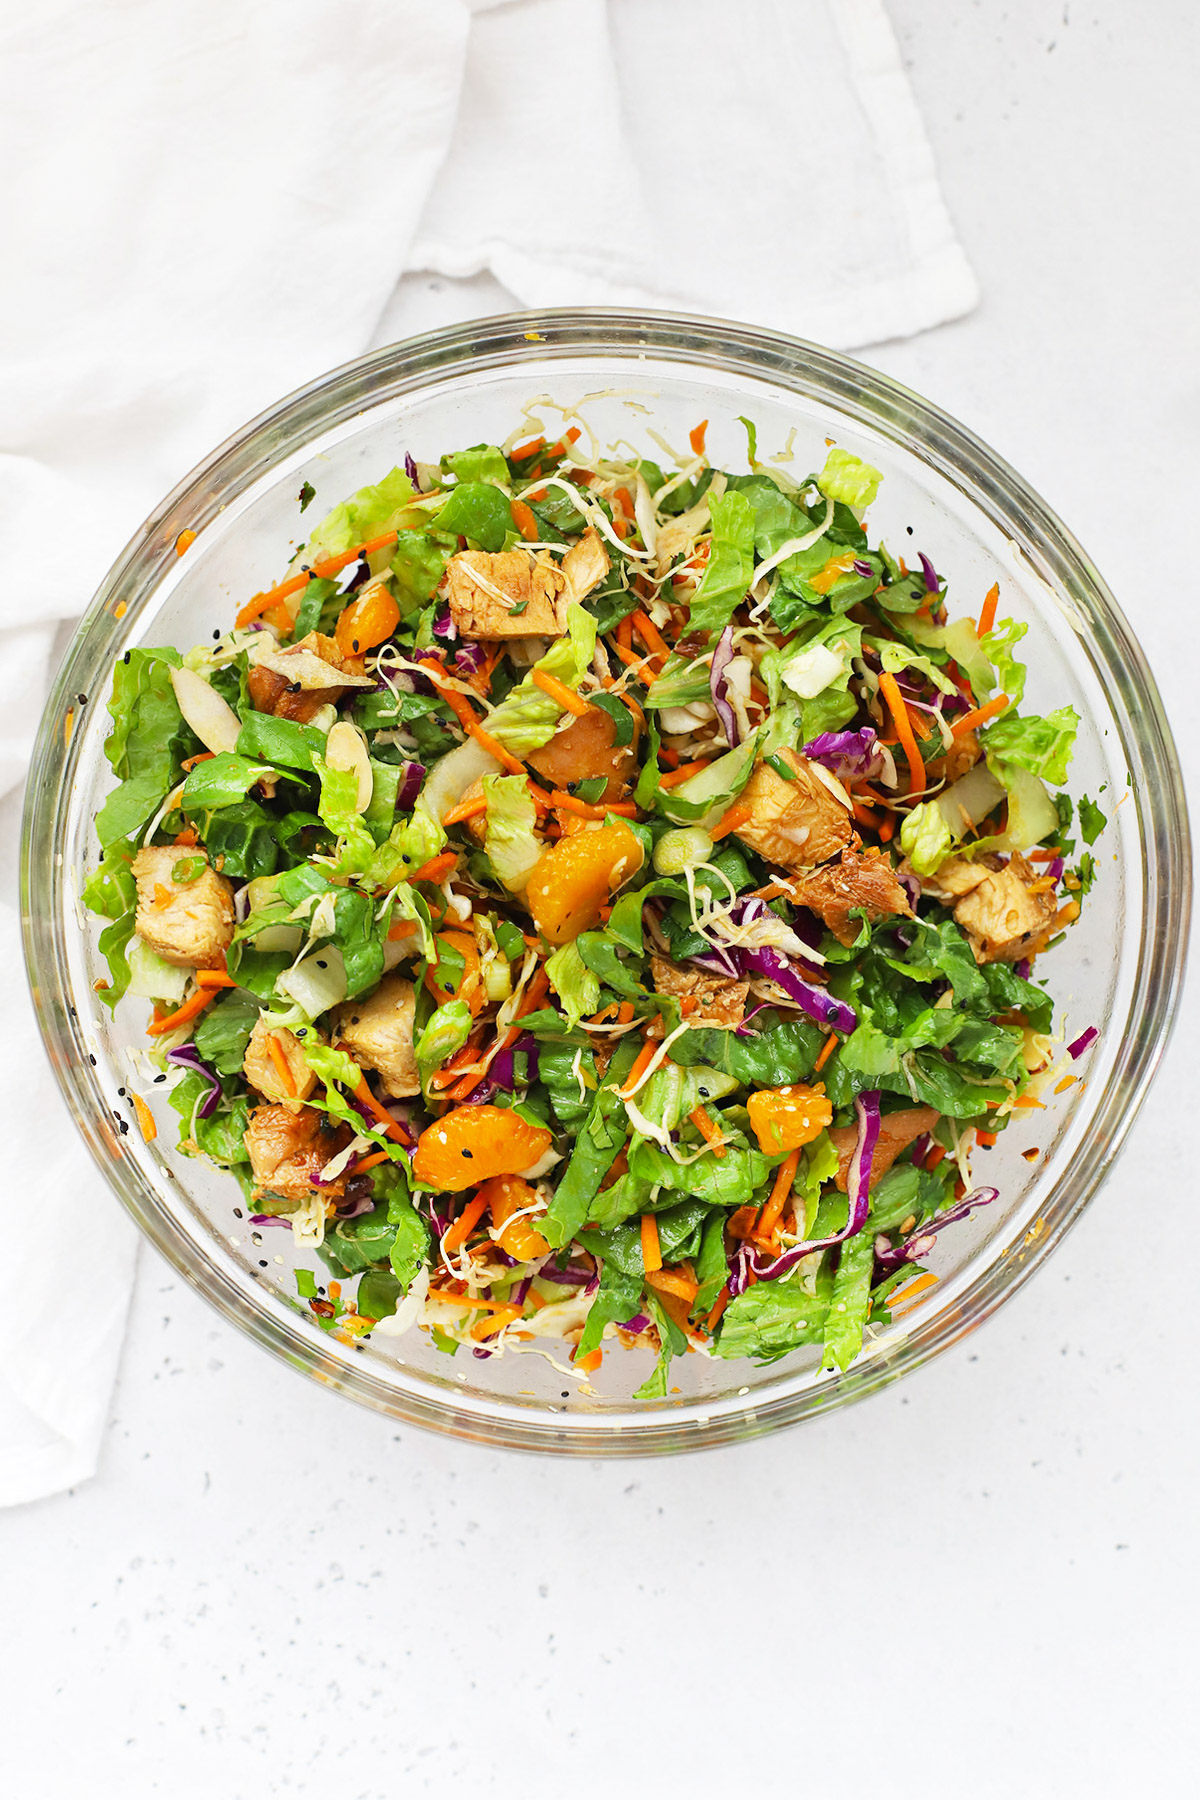 Overhead view of a mixing bowl of Sesame Chicken Salad on a white background